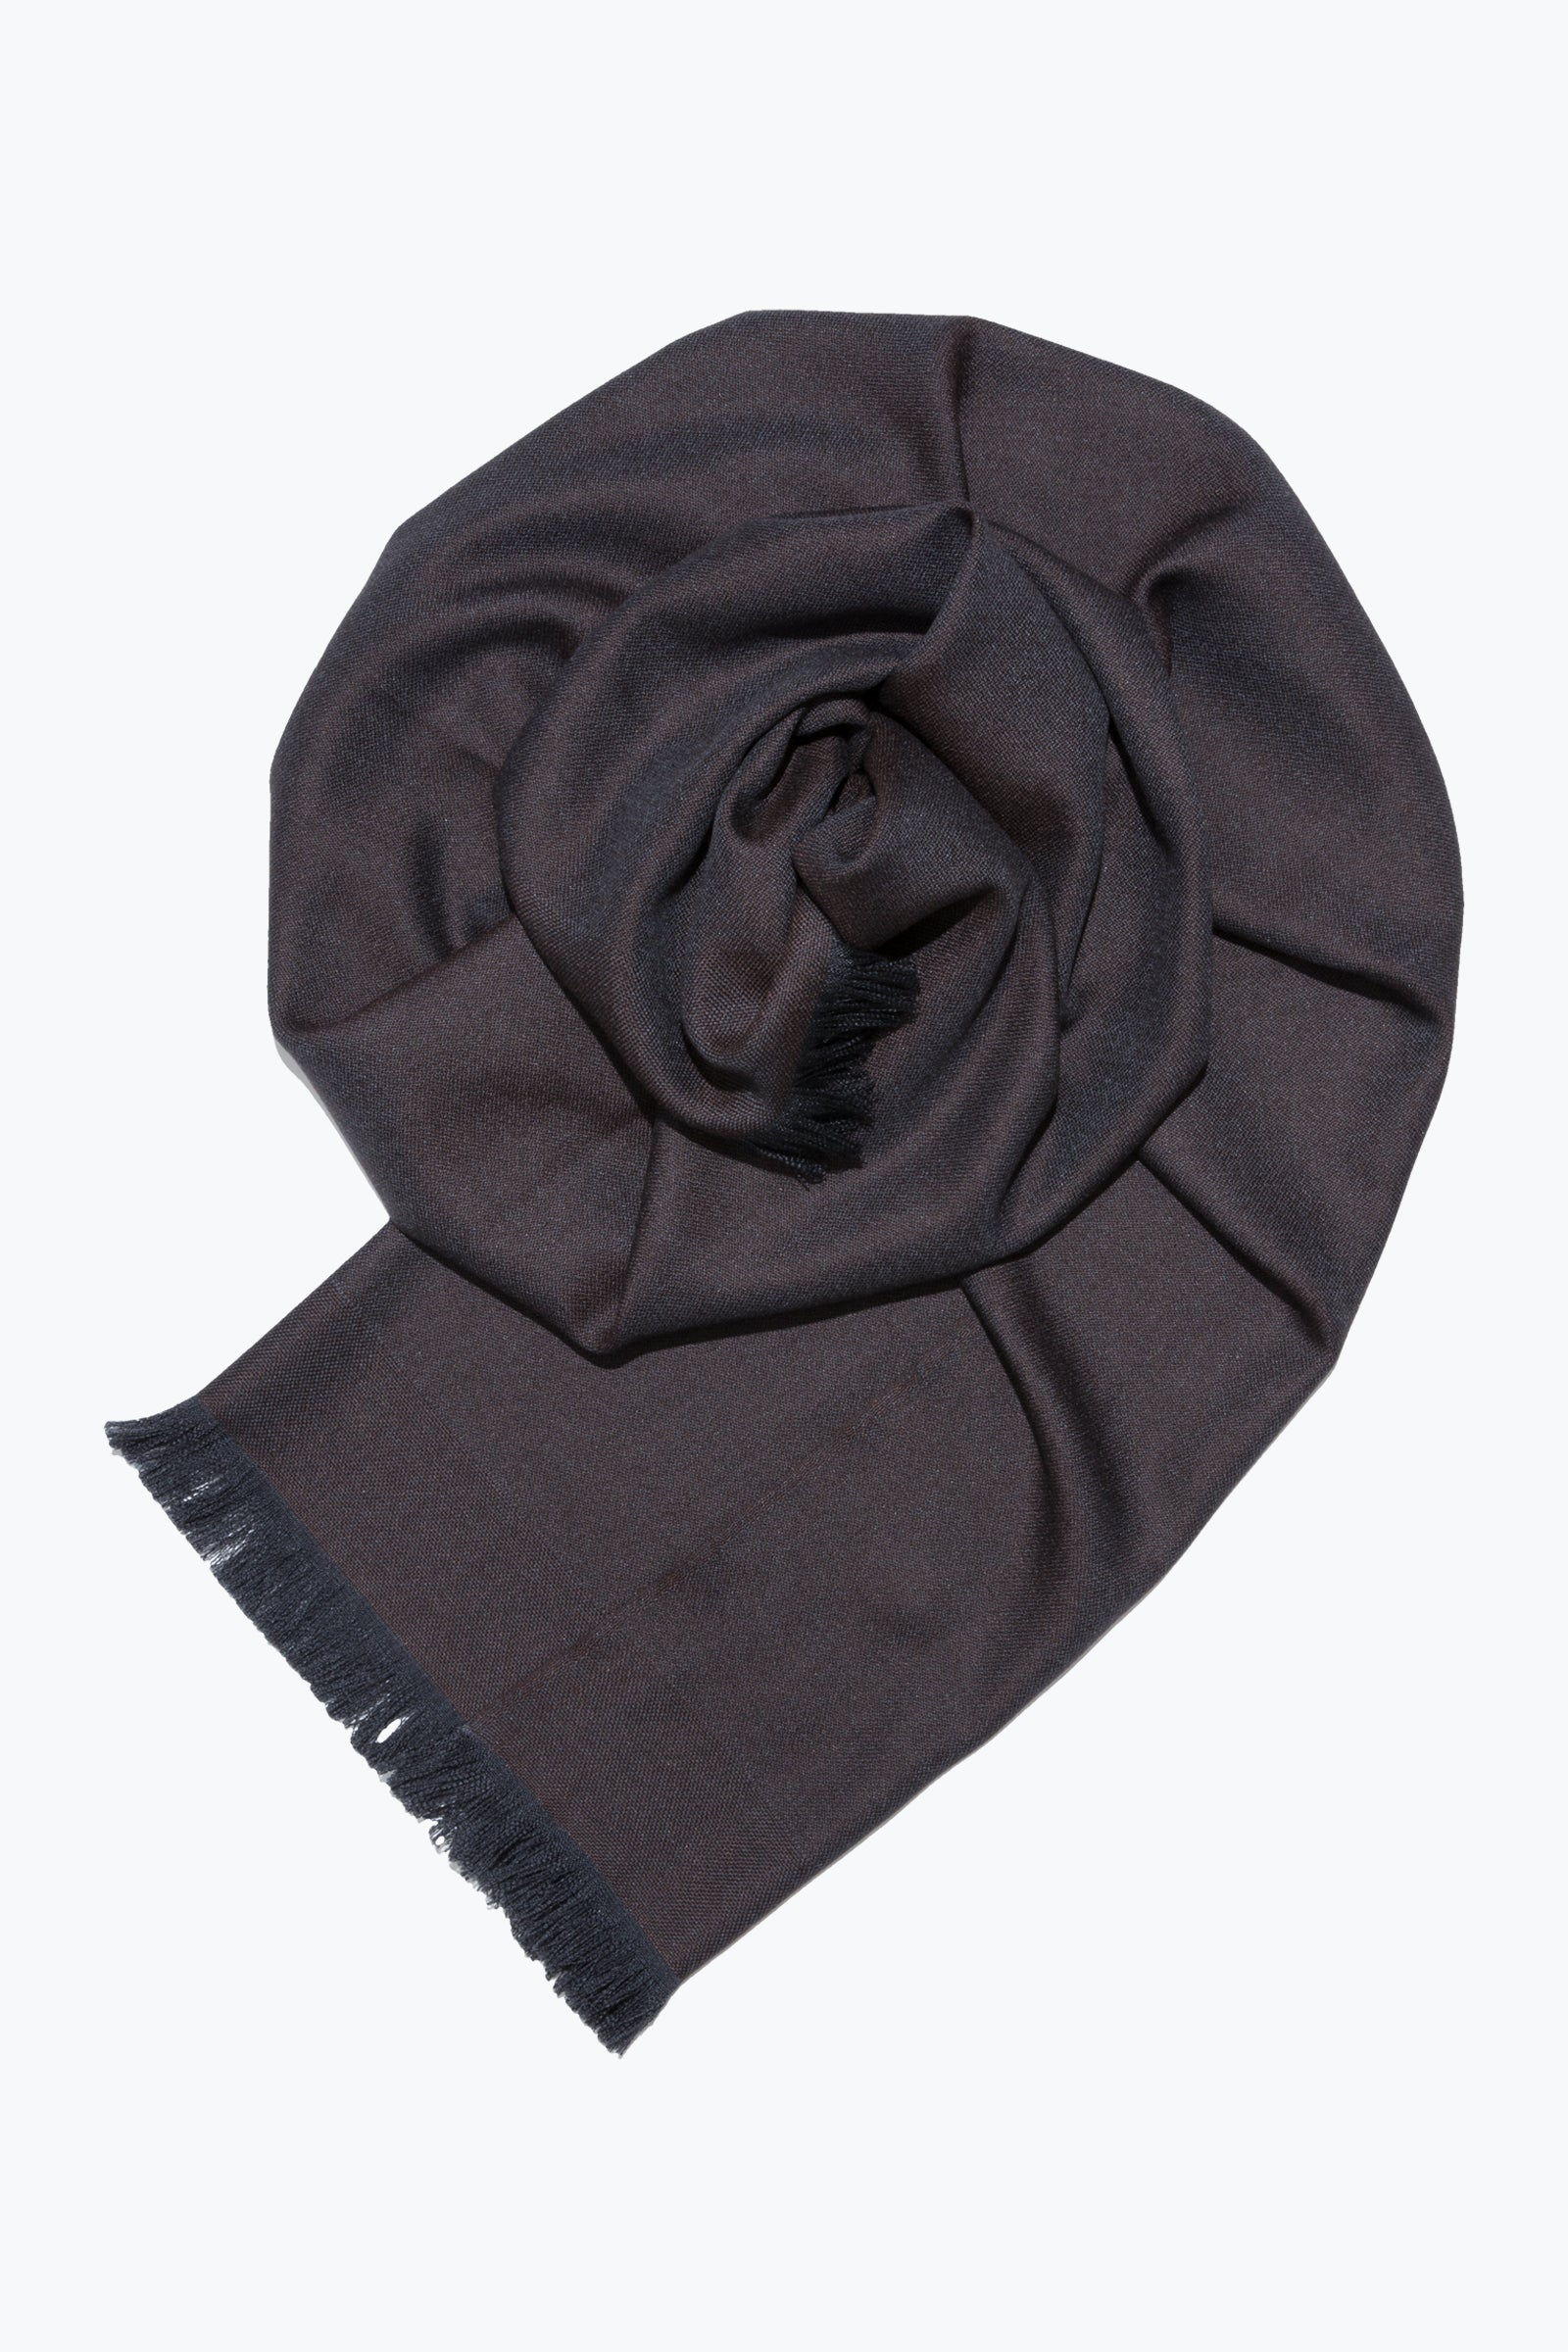 woven shawl scarf - solid with border (chocolate)